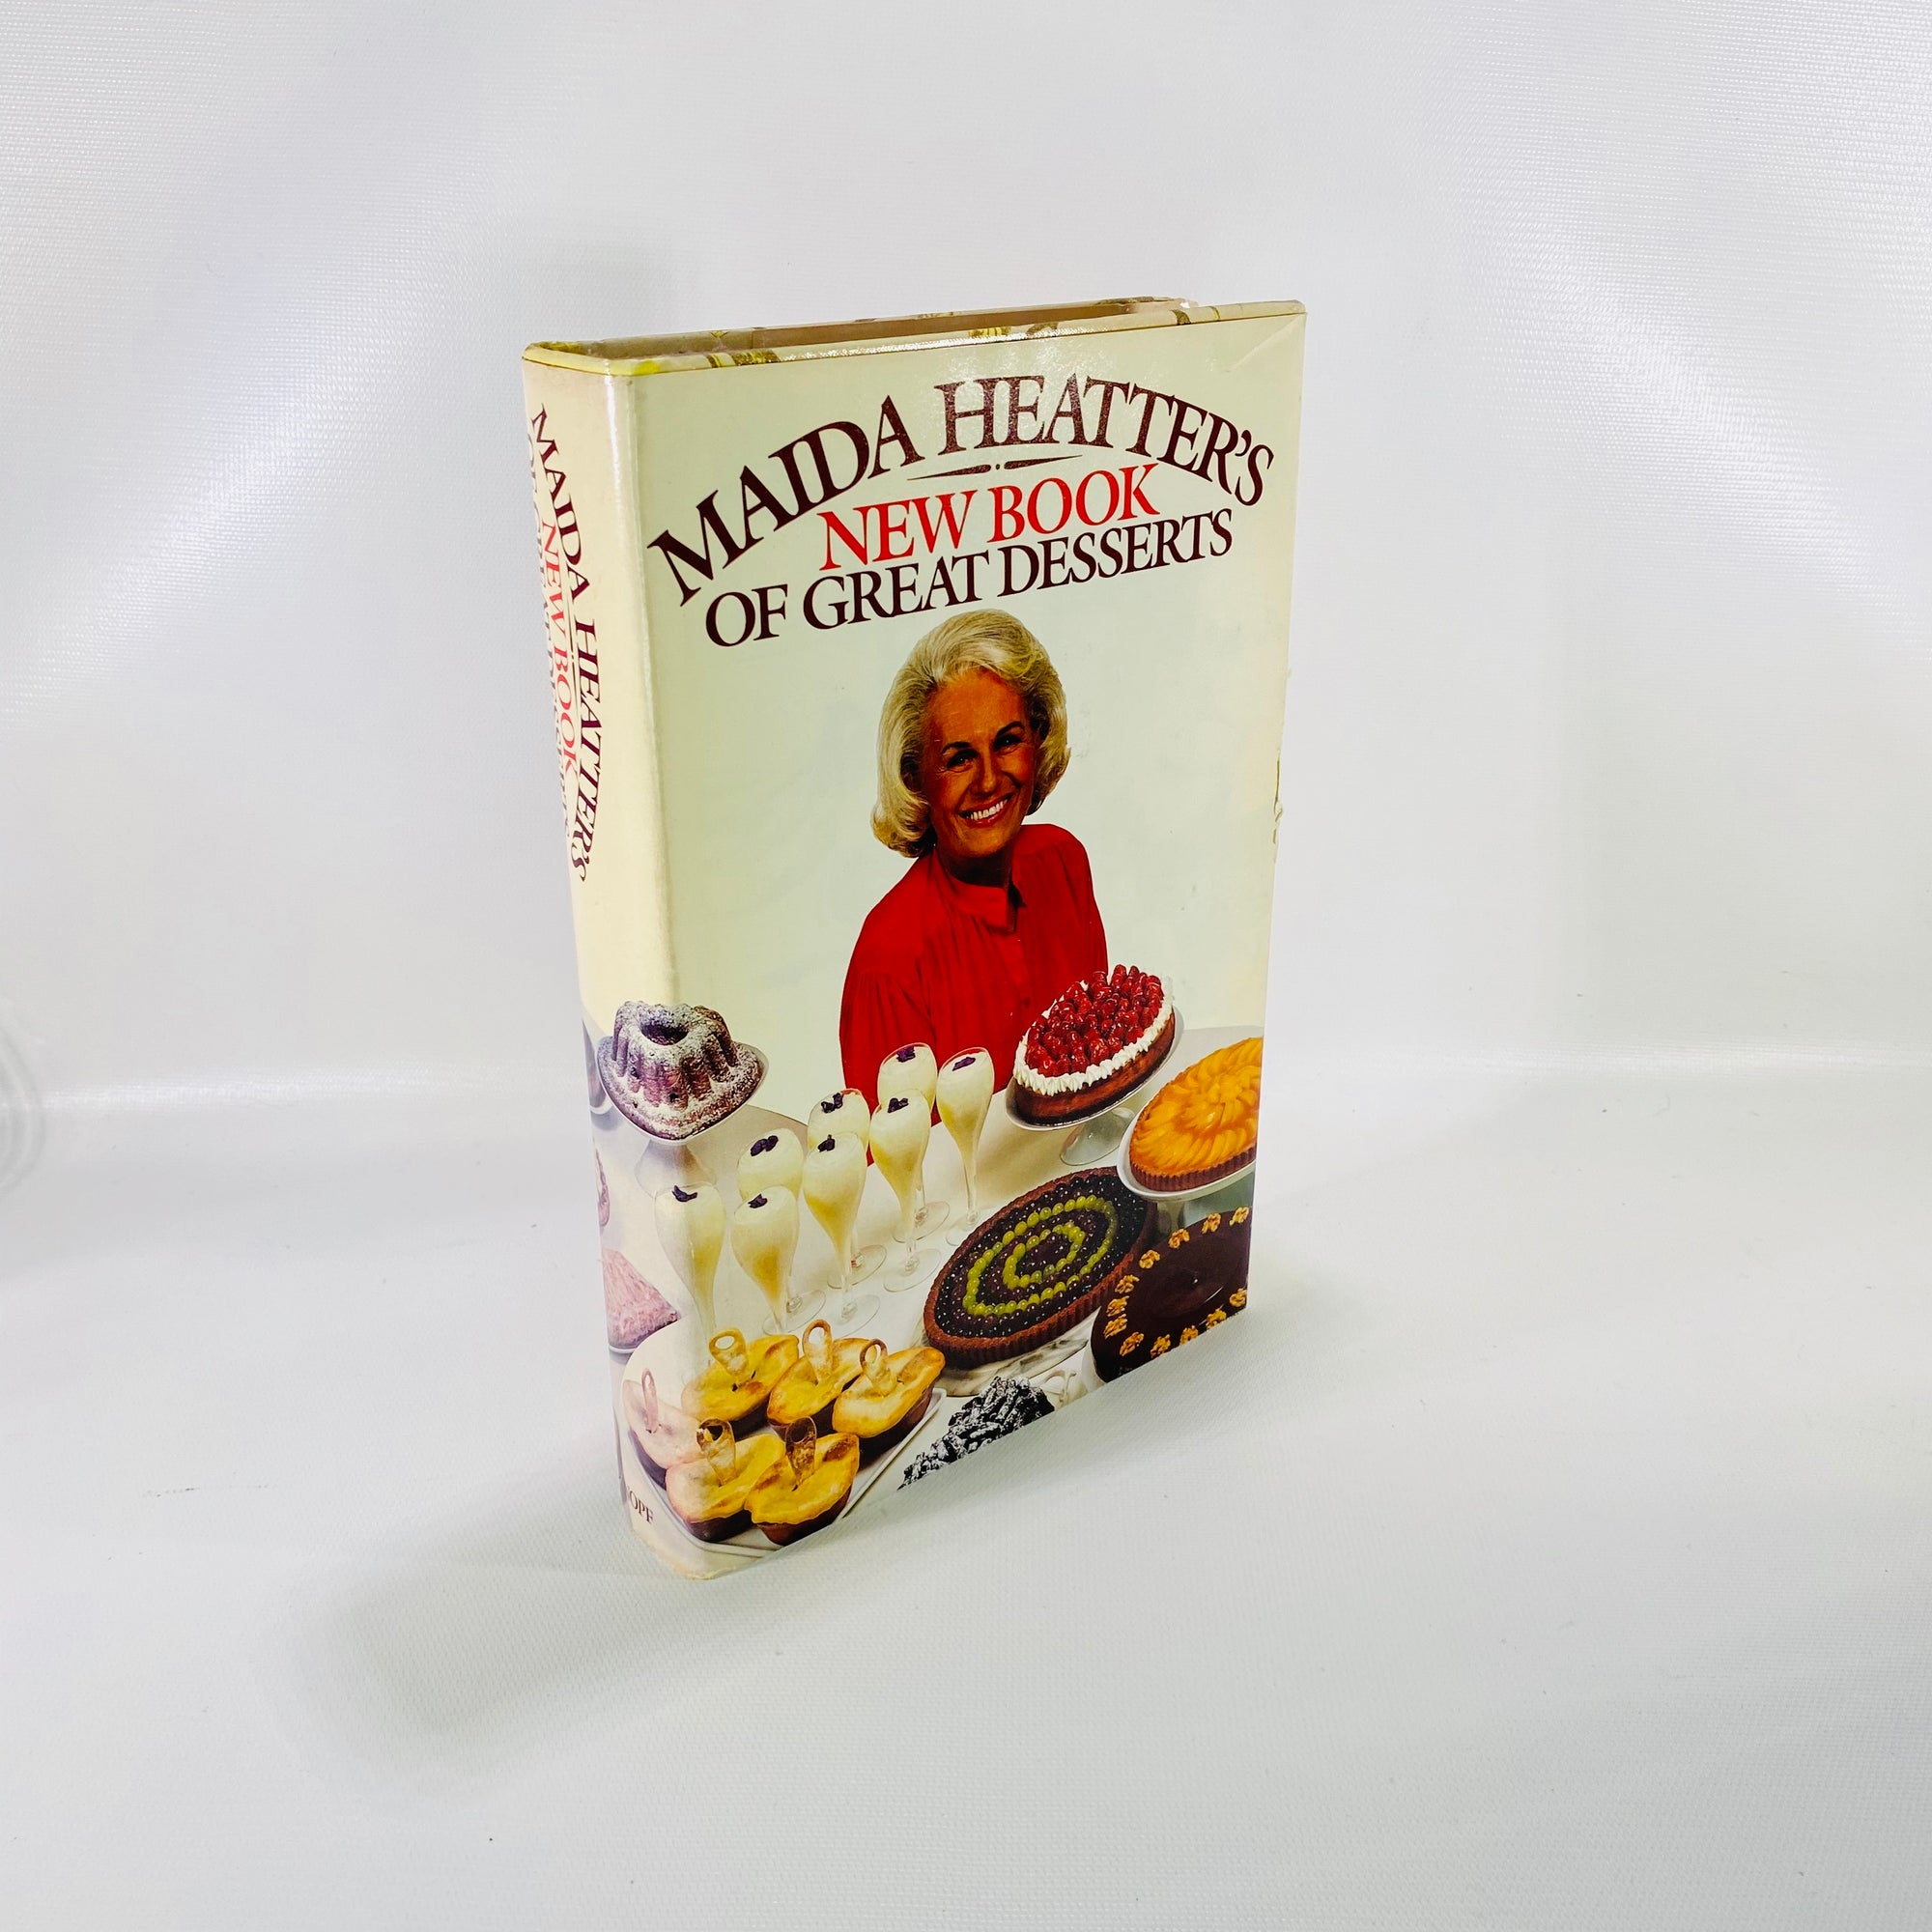 Maida Heatter's New Book of Great Desserts drawings by Toni Evins 1982